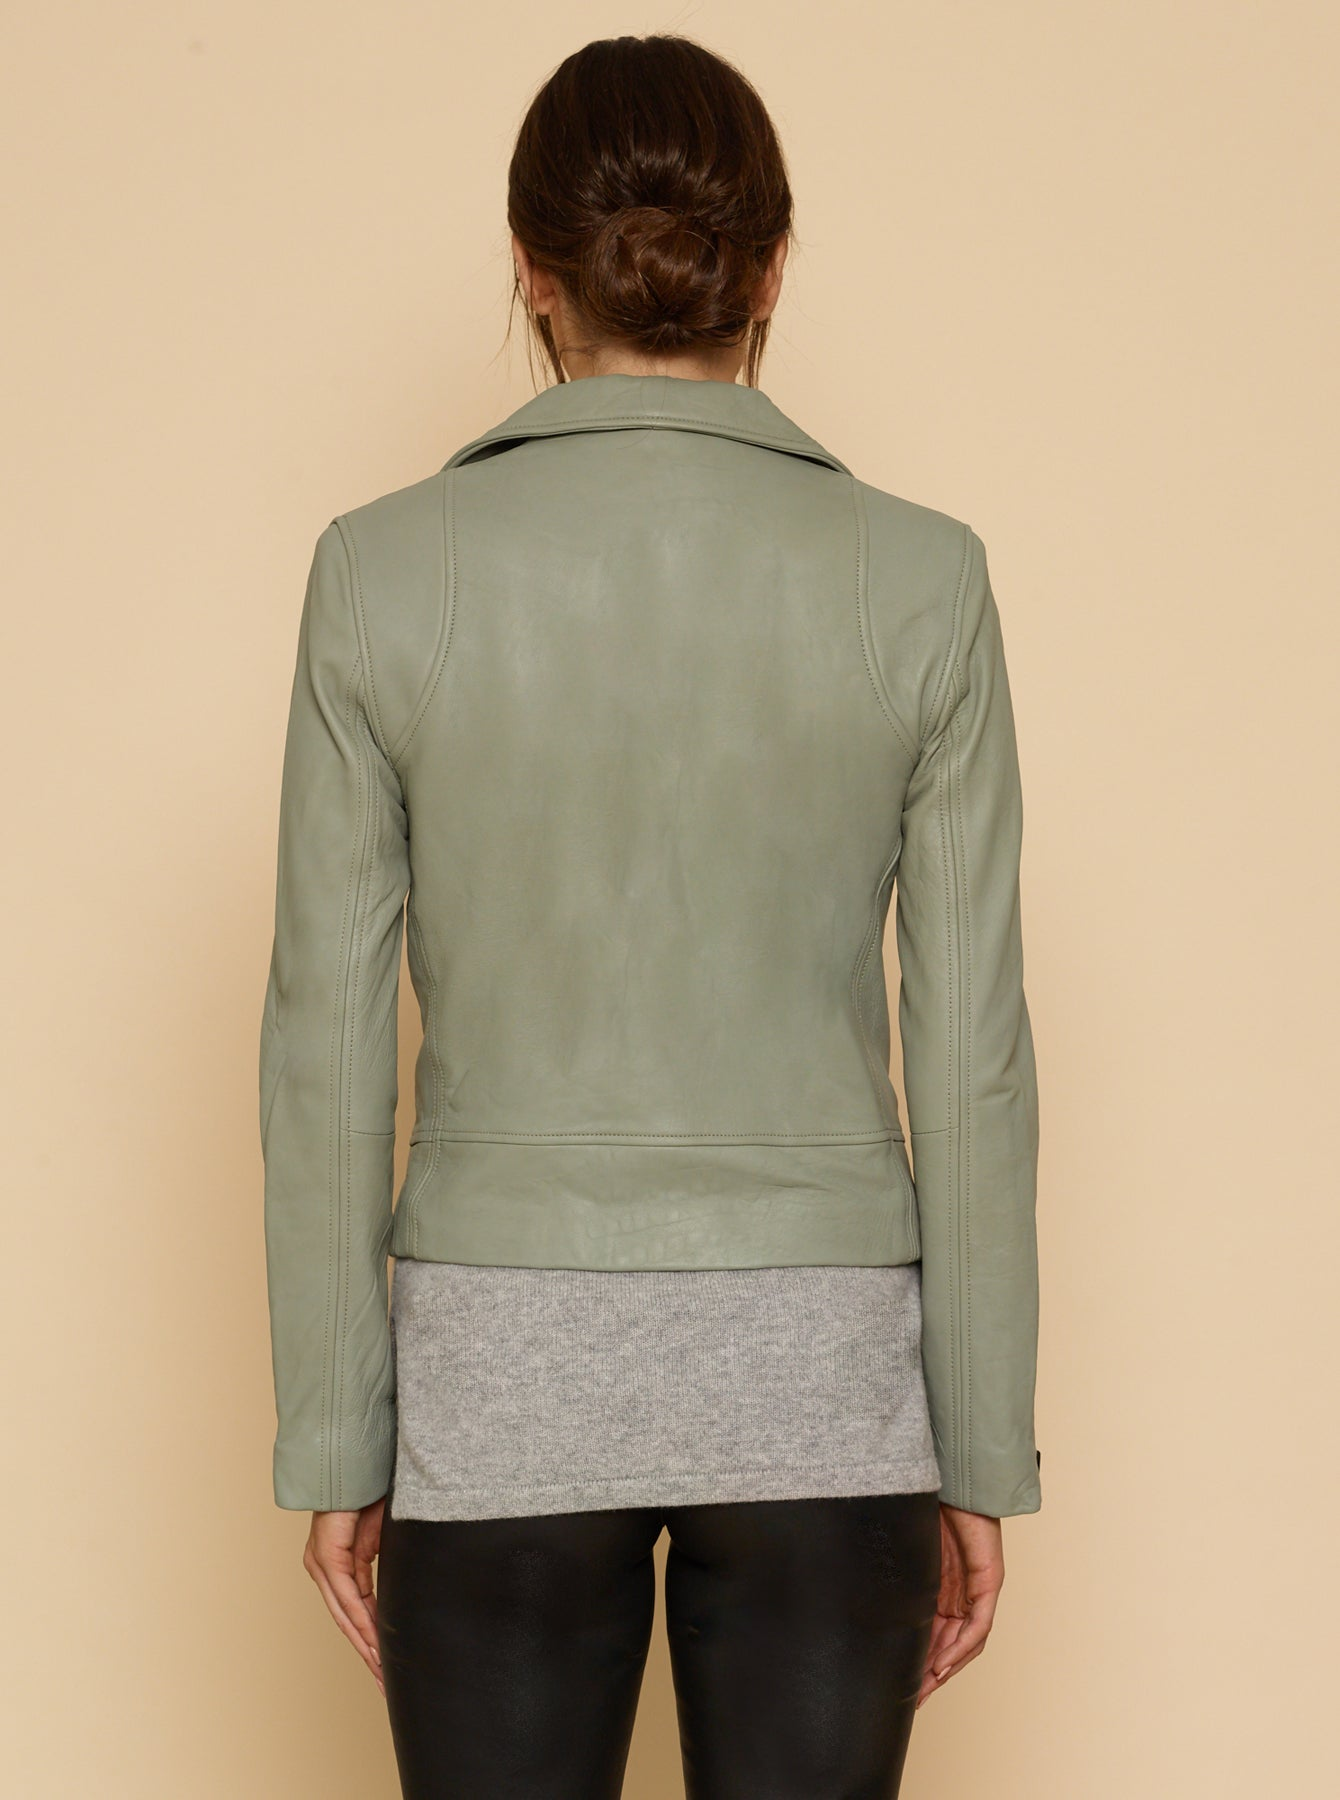 Born To Be Wild Crop Leather Jacket - Sage Green